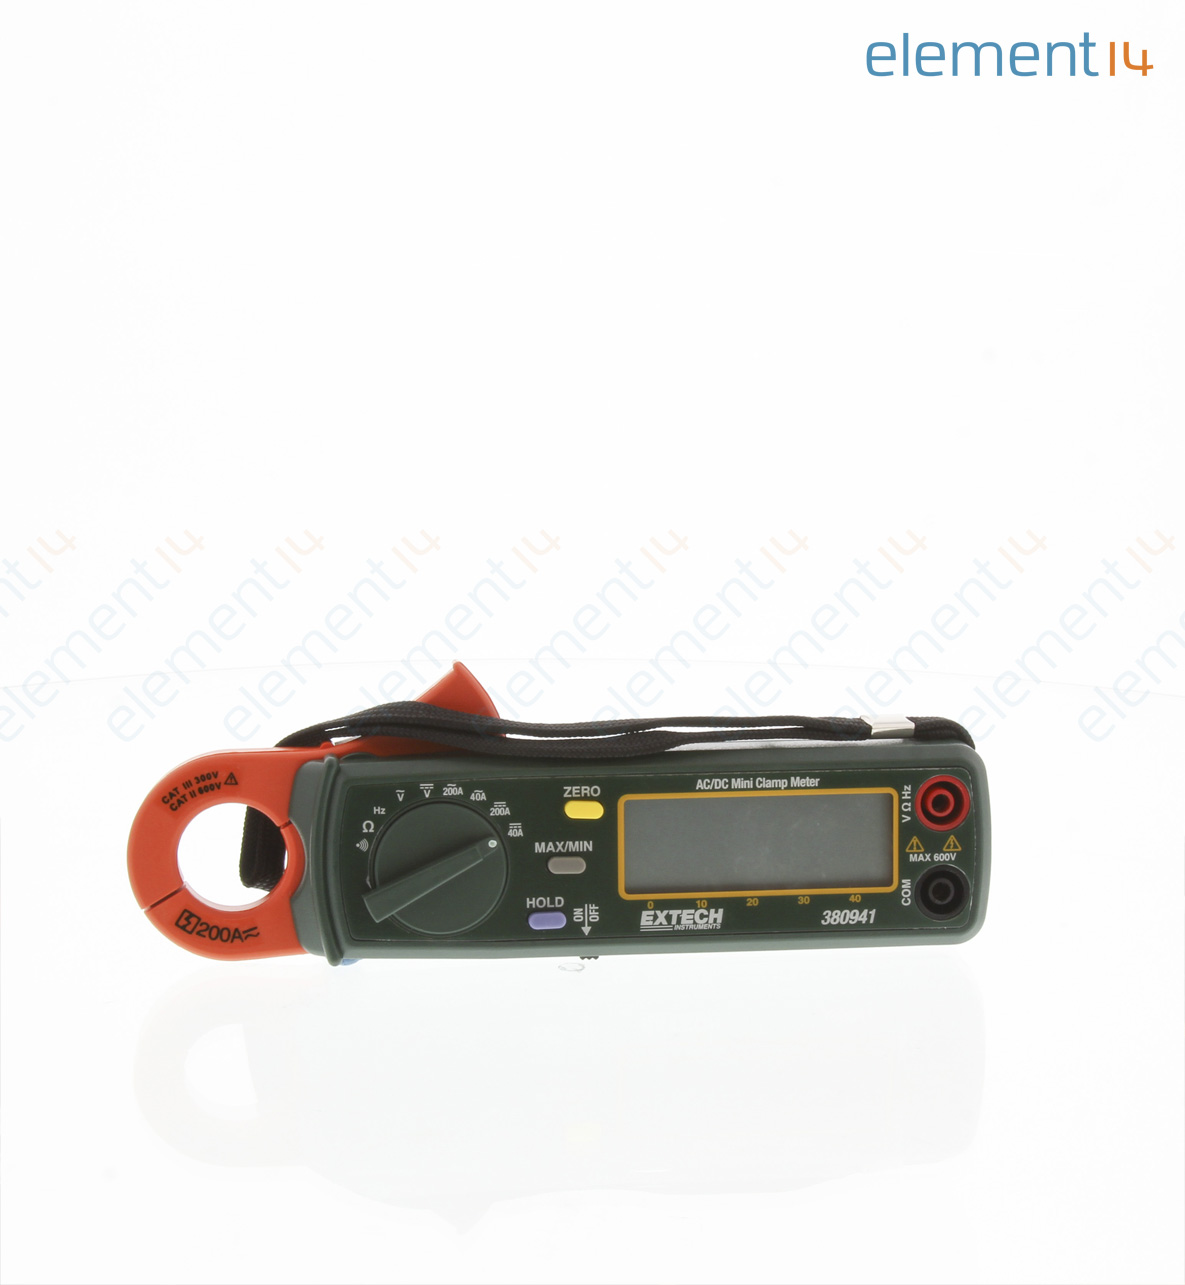 380941 Extech Instruments Clamp Meter Ac Dc Current Voltage And Circuits Frequency Resistance 200 A 400 V Ohm